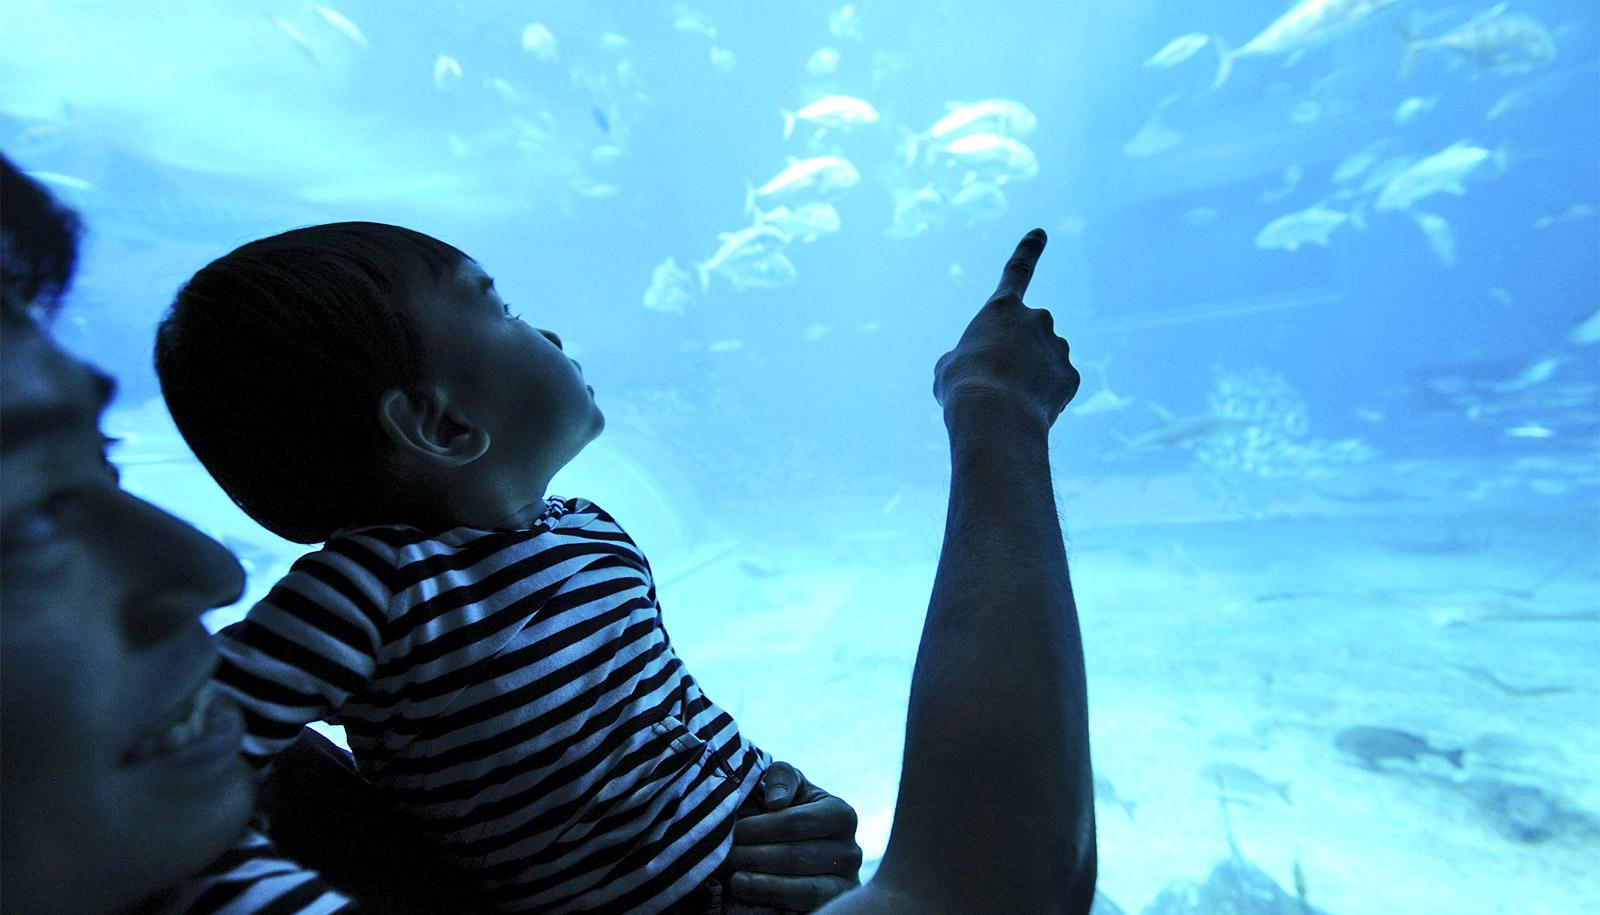 father and child at aquarium (science education concept)